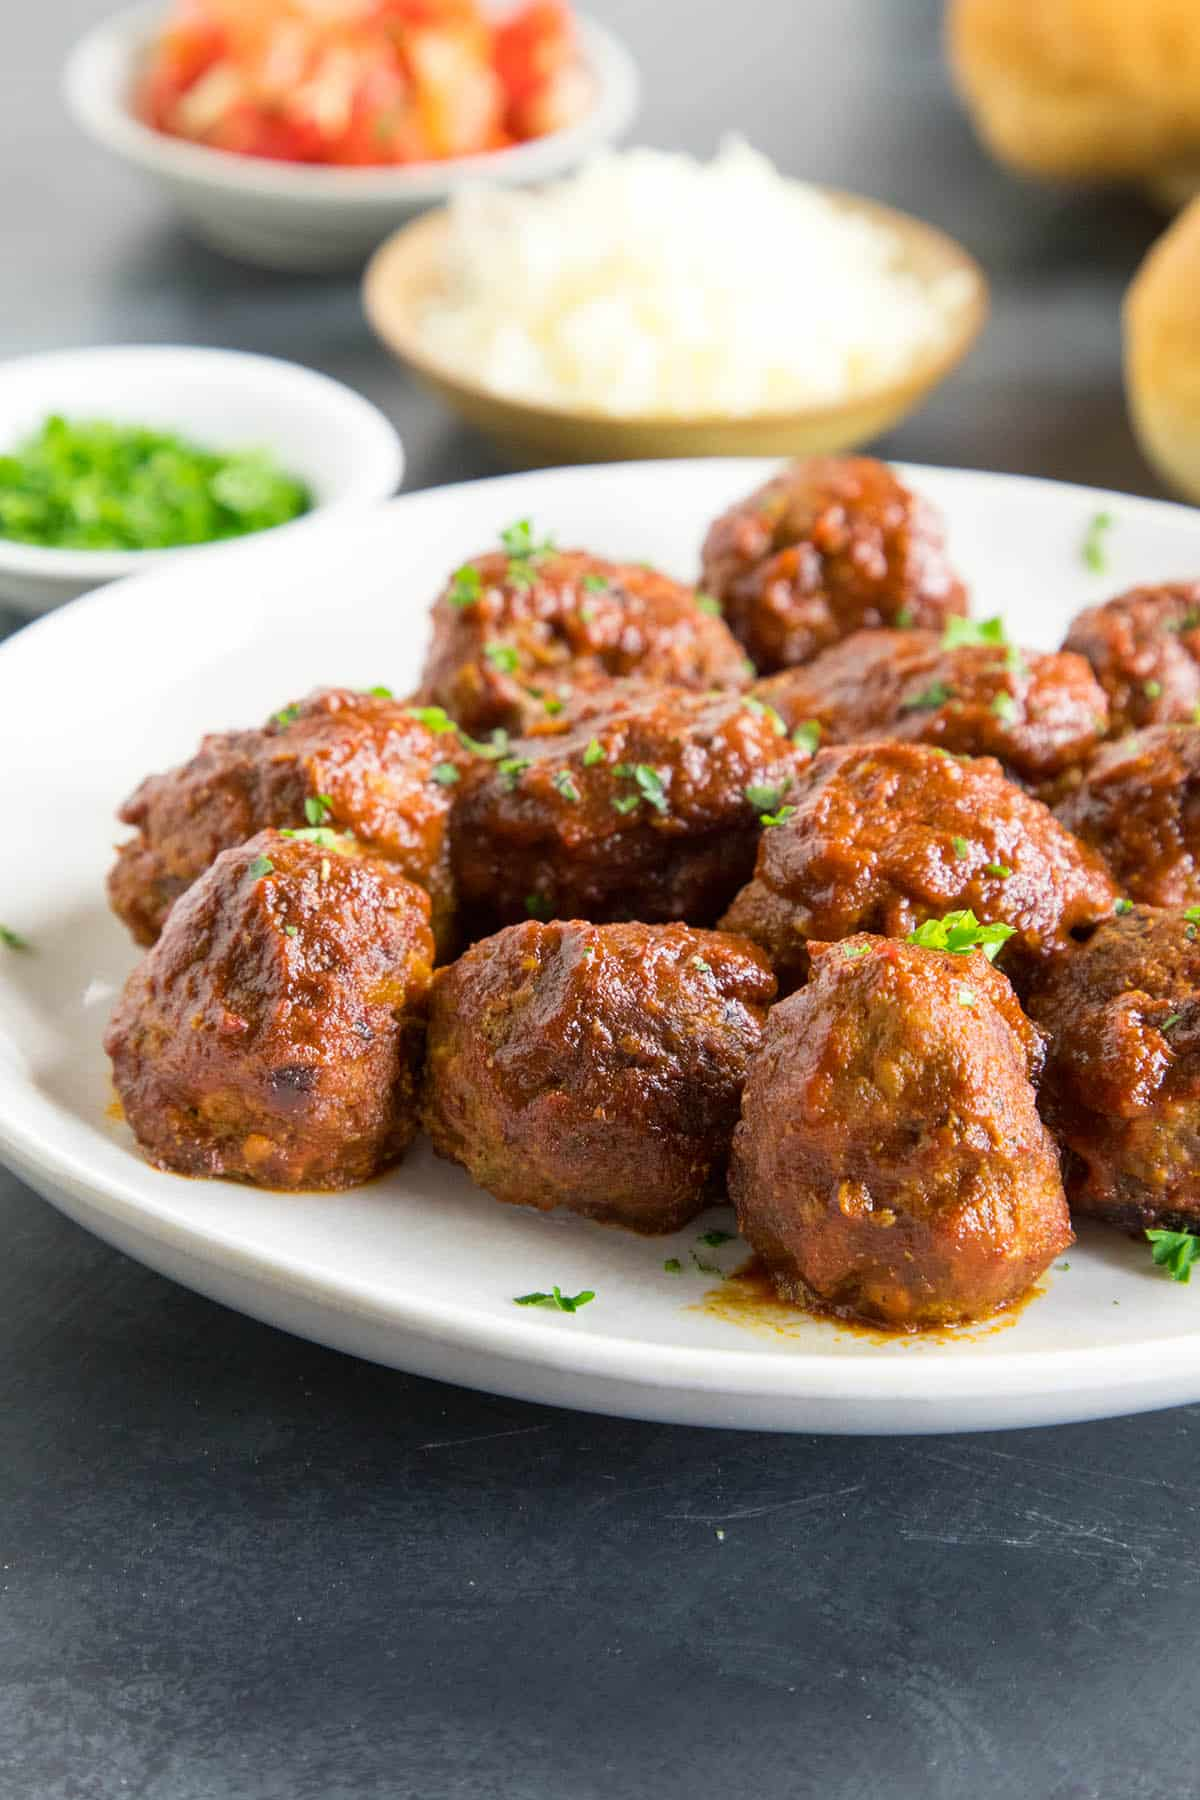 Spicy Meatballs Chipotle Lime Sauce Recipe - Ready for your next party